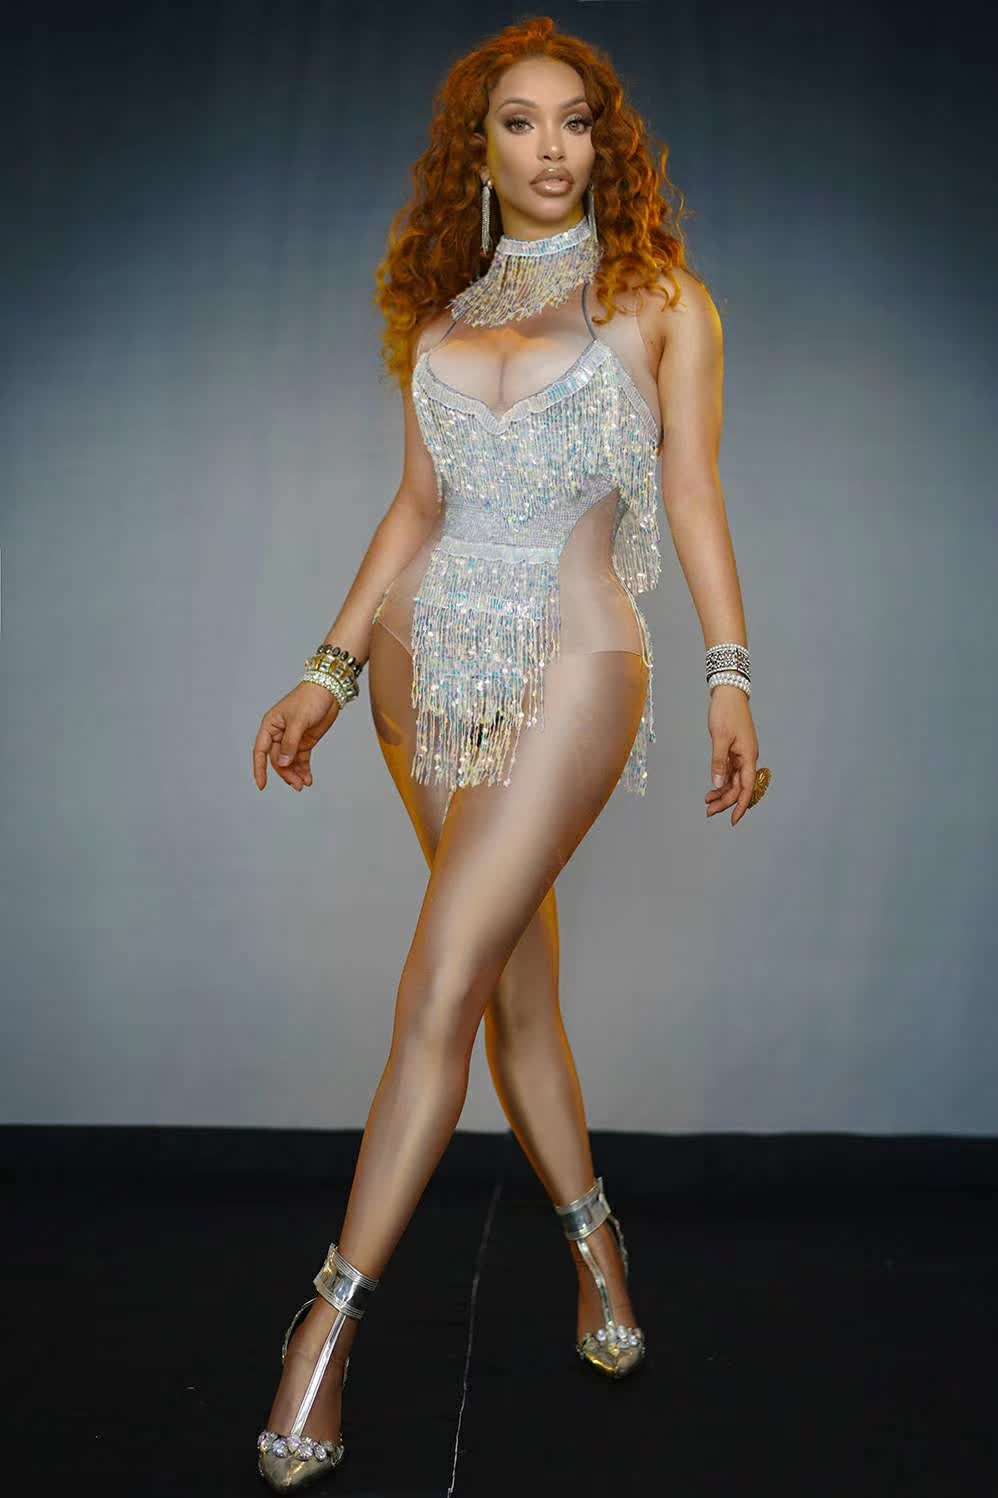 2020 Sparkly Sequins Fringes Bodysuit Bar Women Singer Sexy Leotard Tassel Costume Celebrate Outfit Evening Dance Stage Outfit